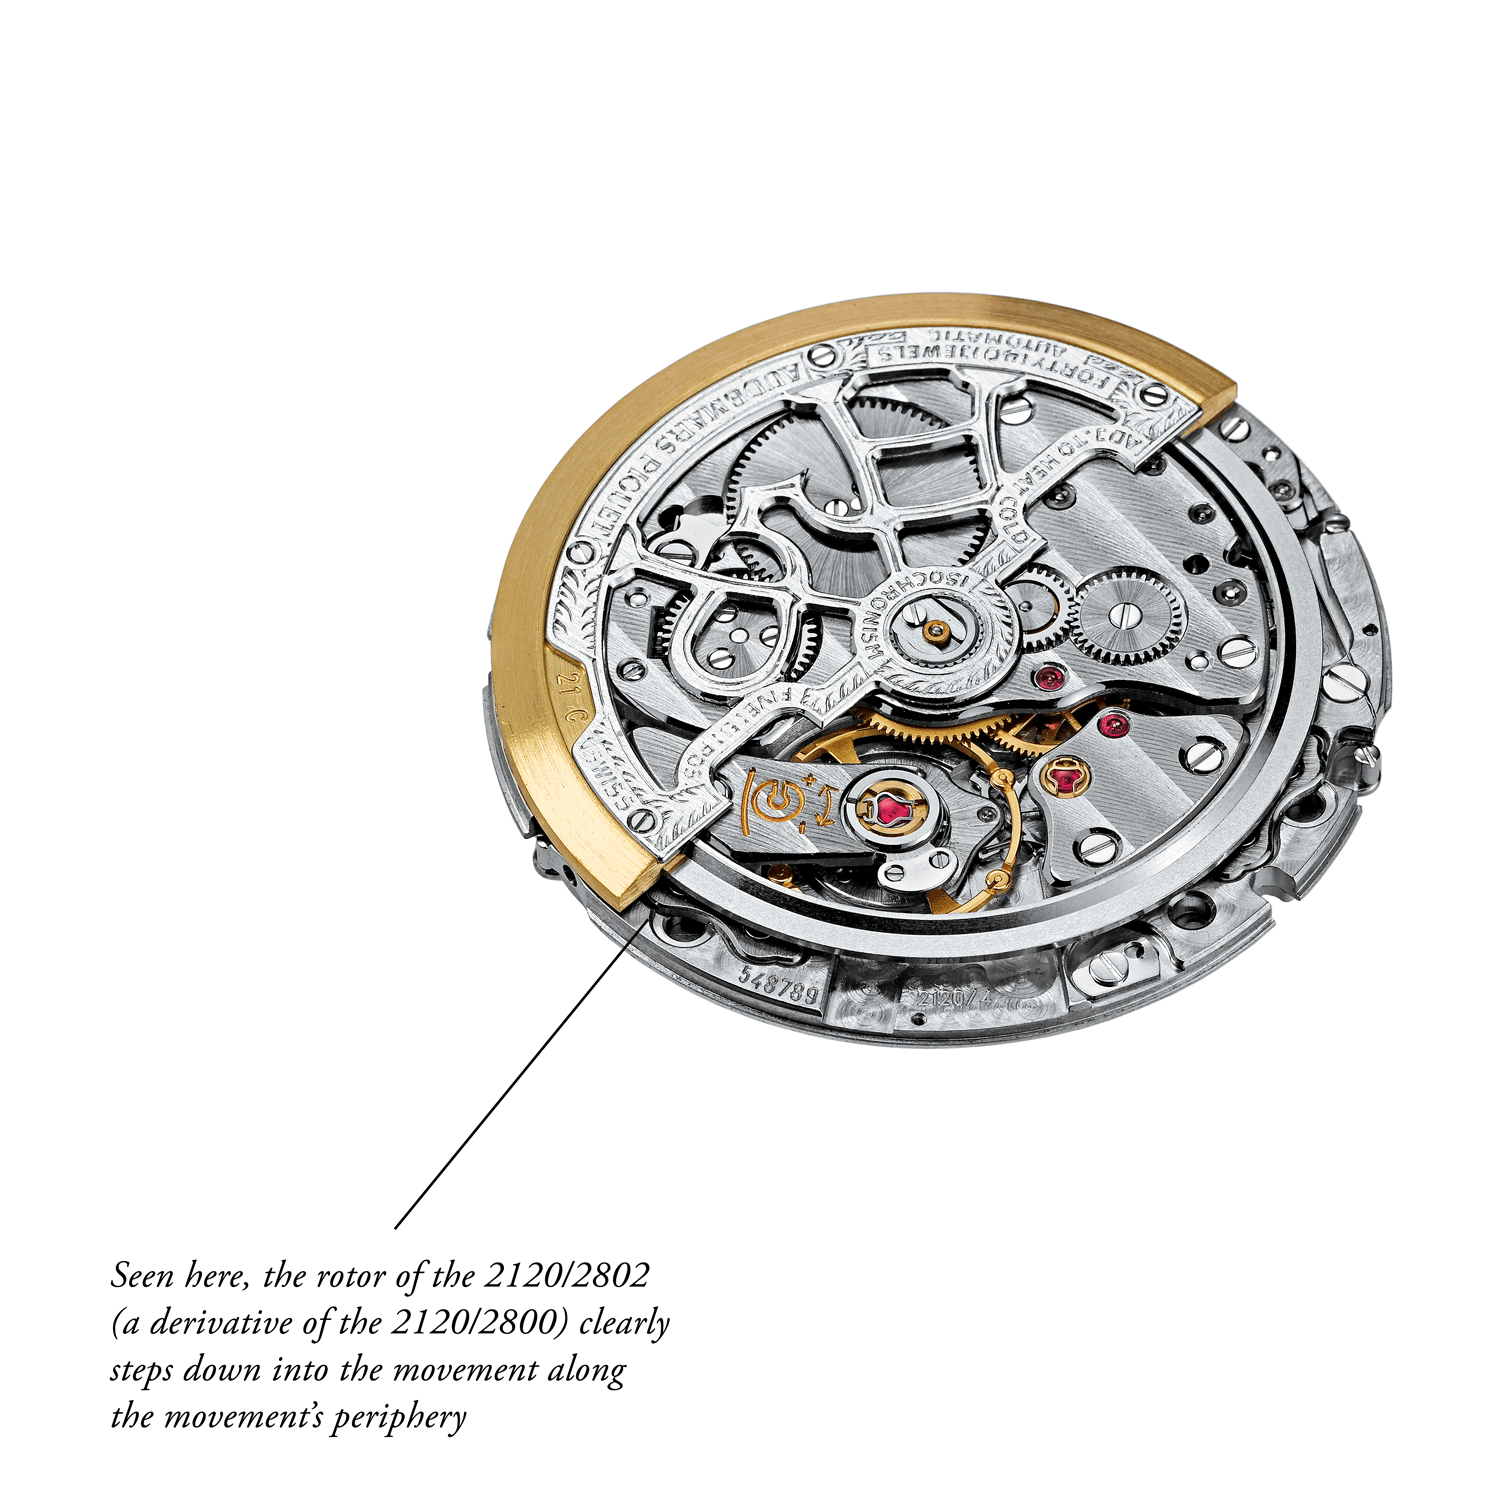 Seen here, the rotor of the 2120/2802 (a derivative of the 2120/2800) clearly steps down into the movement along the movement's periphery